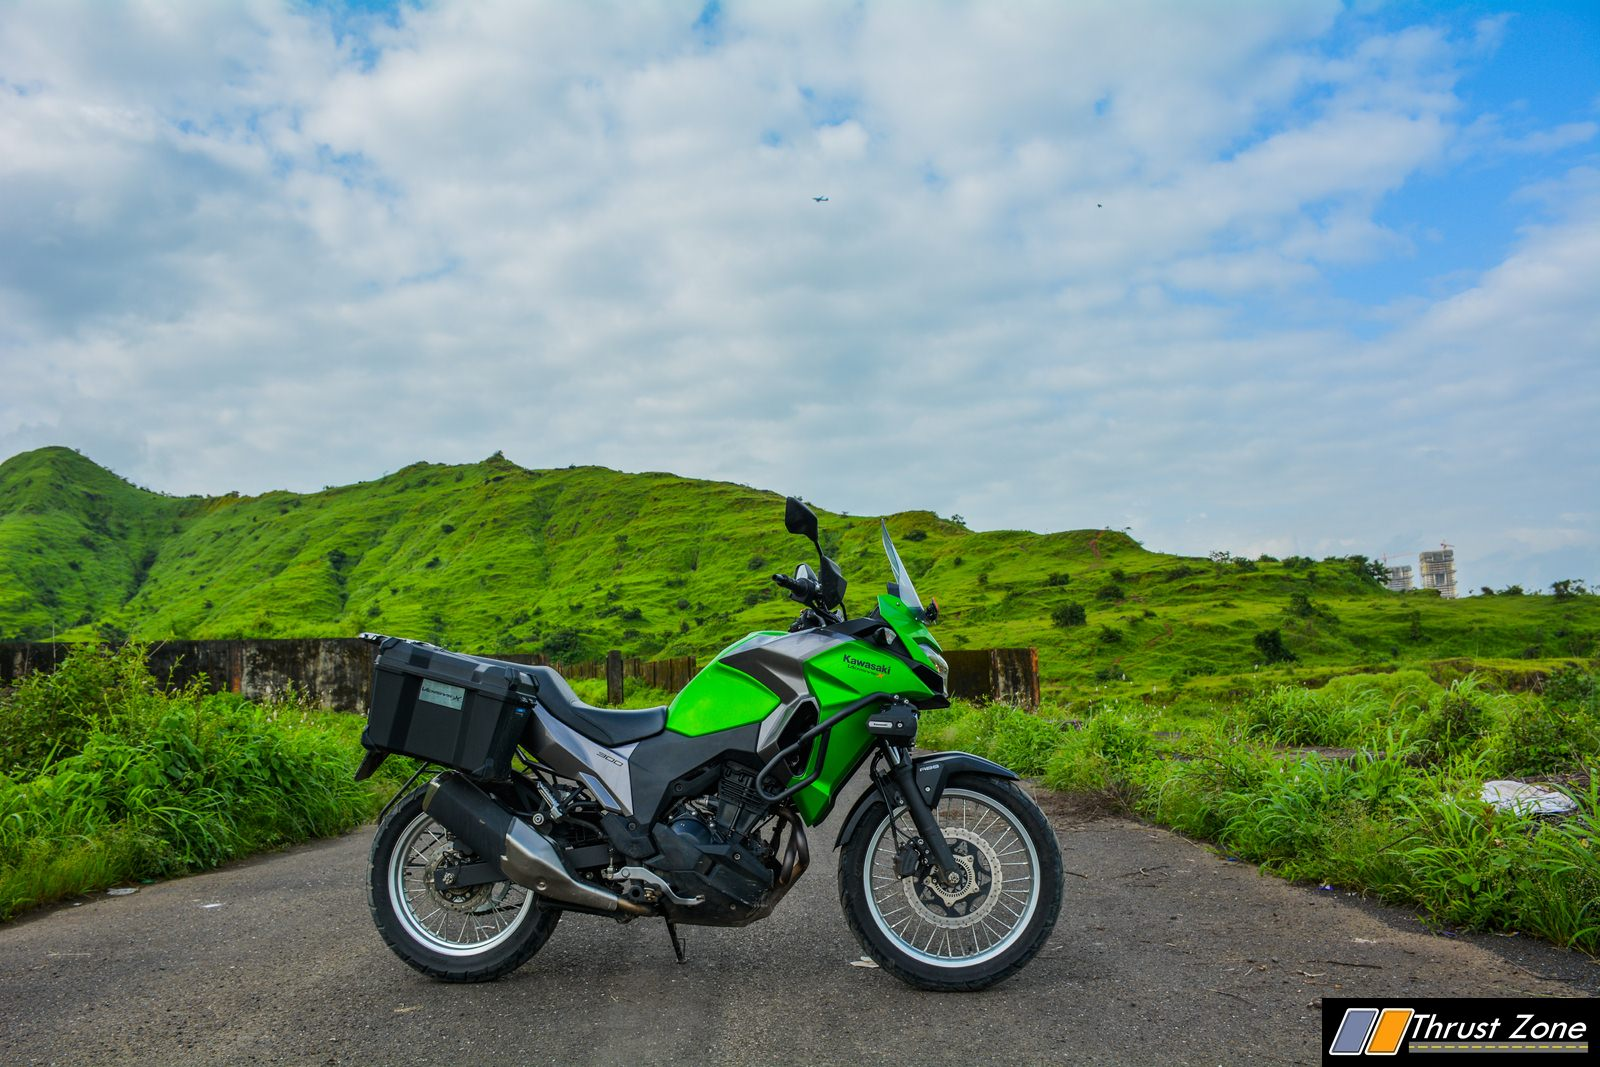 2018-Kawasaki-Versys-300-India-Review-13